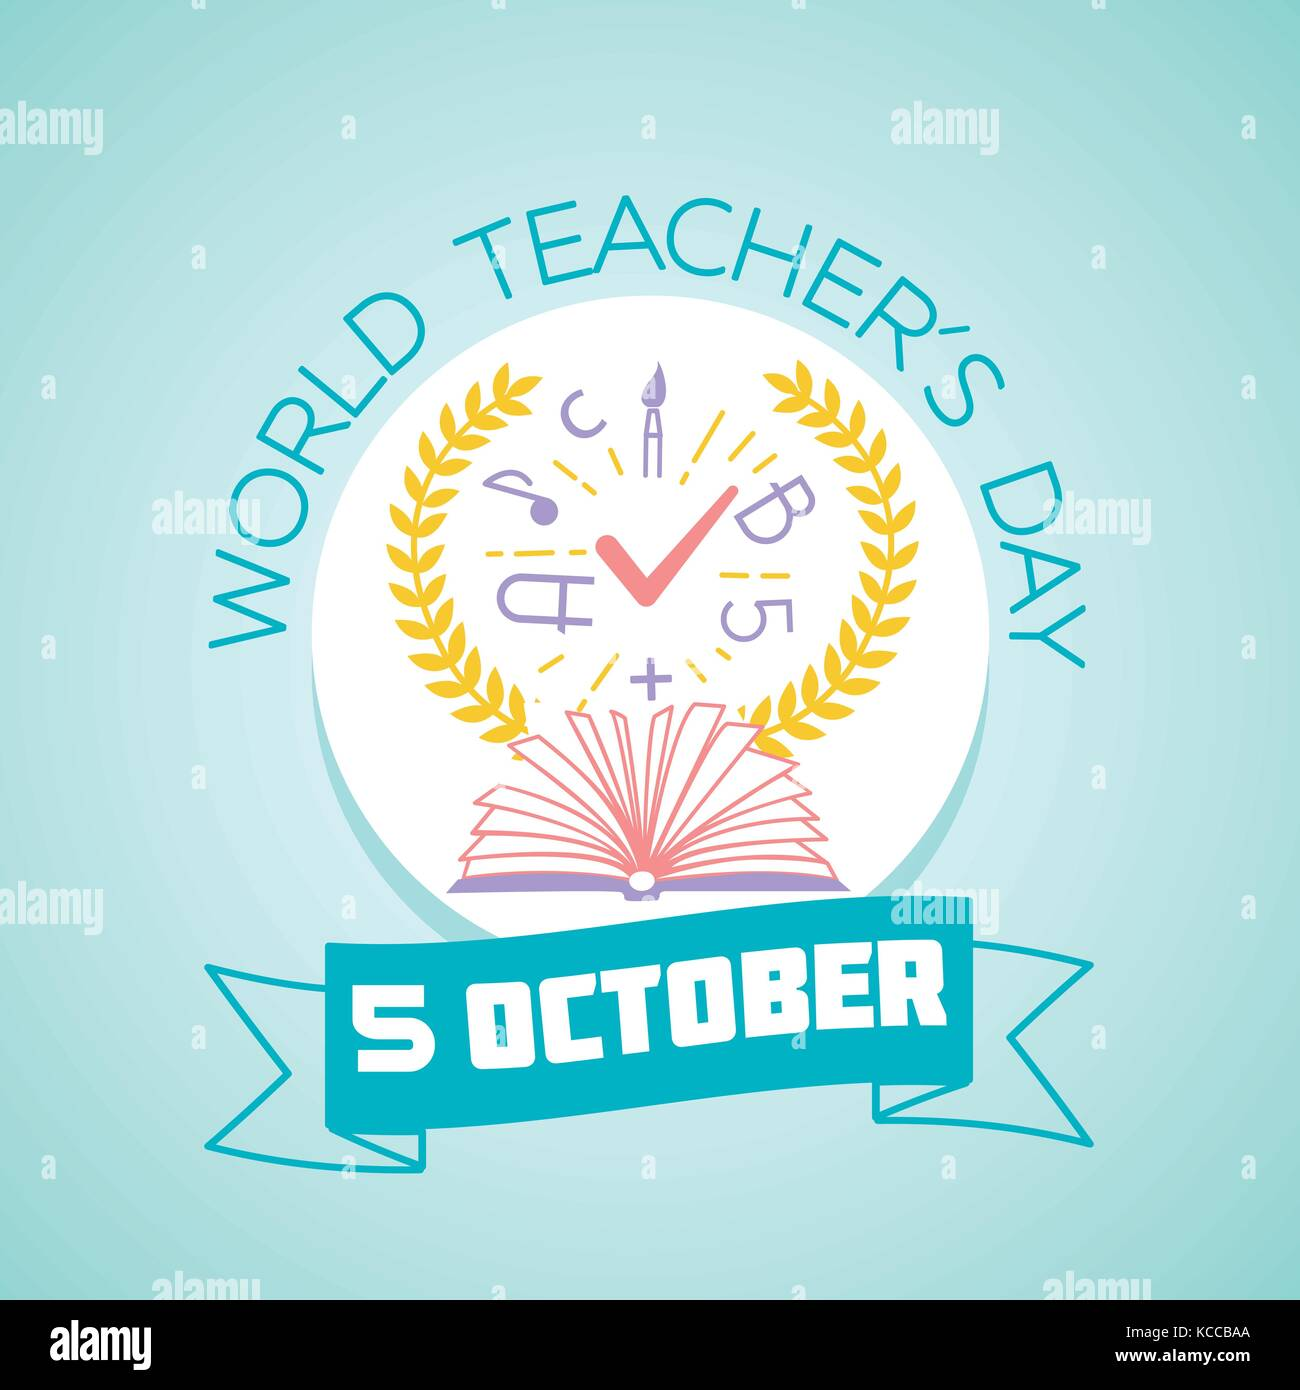 Calendar for each day on october 5 greeting card holiday world calendar for each day on october 5 greeting card holiday world teachers day icon in the linear style kristyandbryce Images